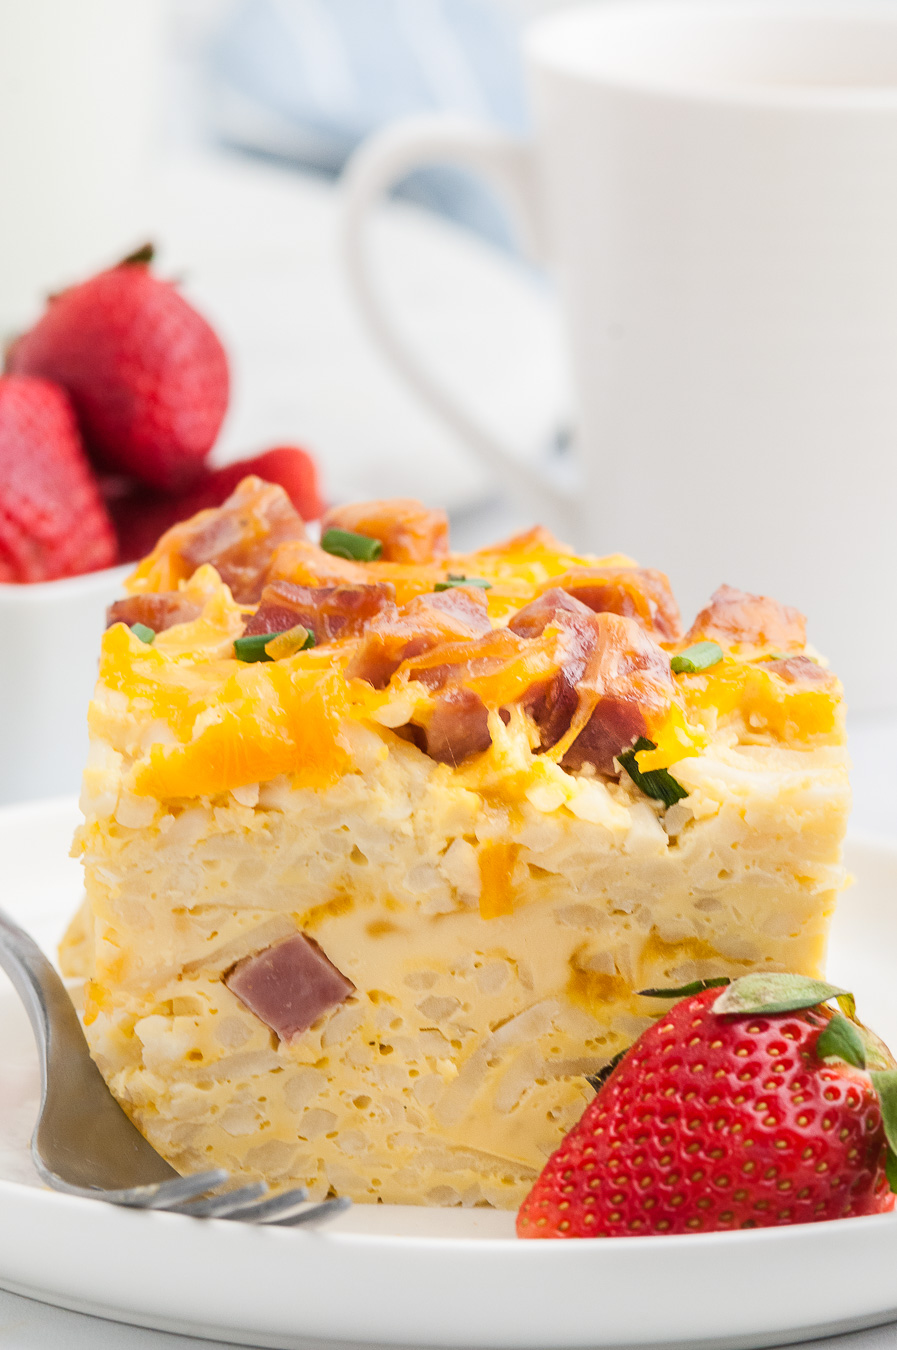 up close view of tall egg breakfast casserole. Fresh strawberry garnish.